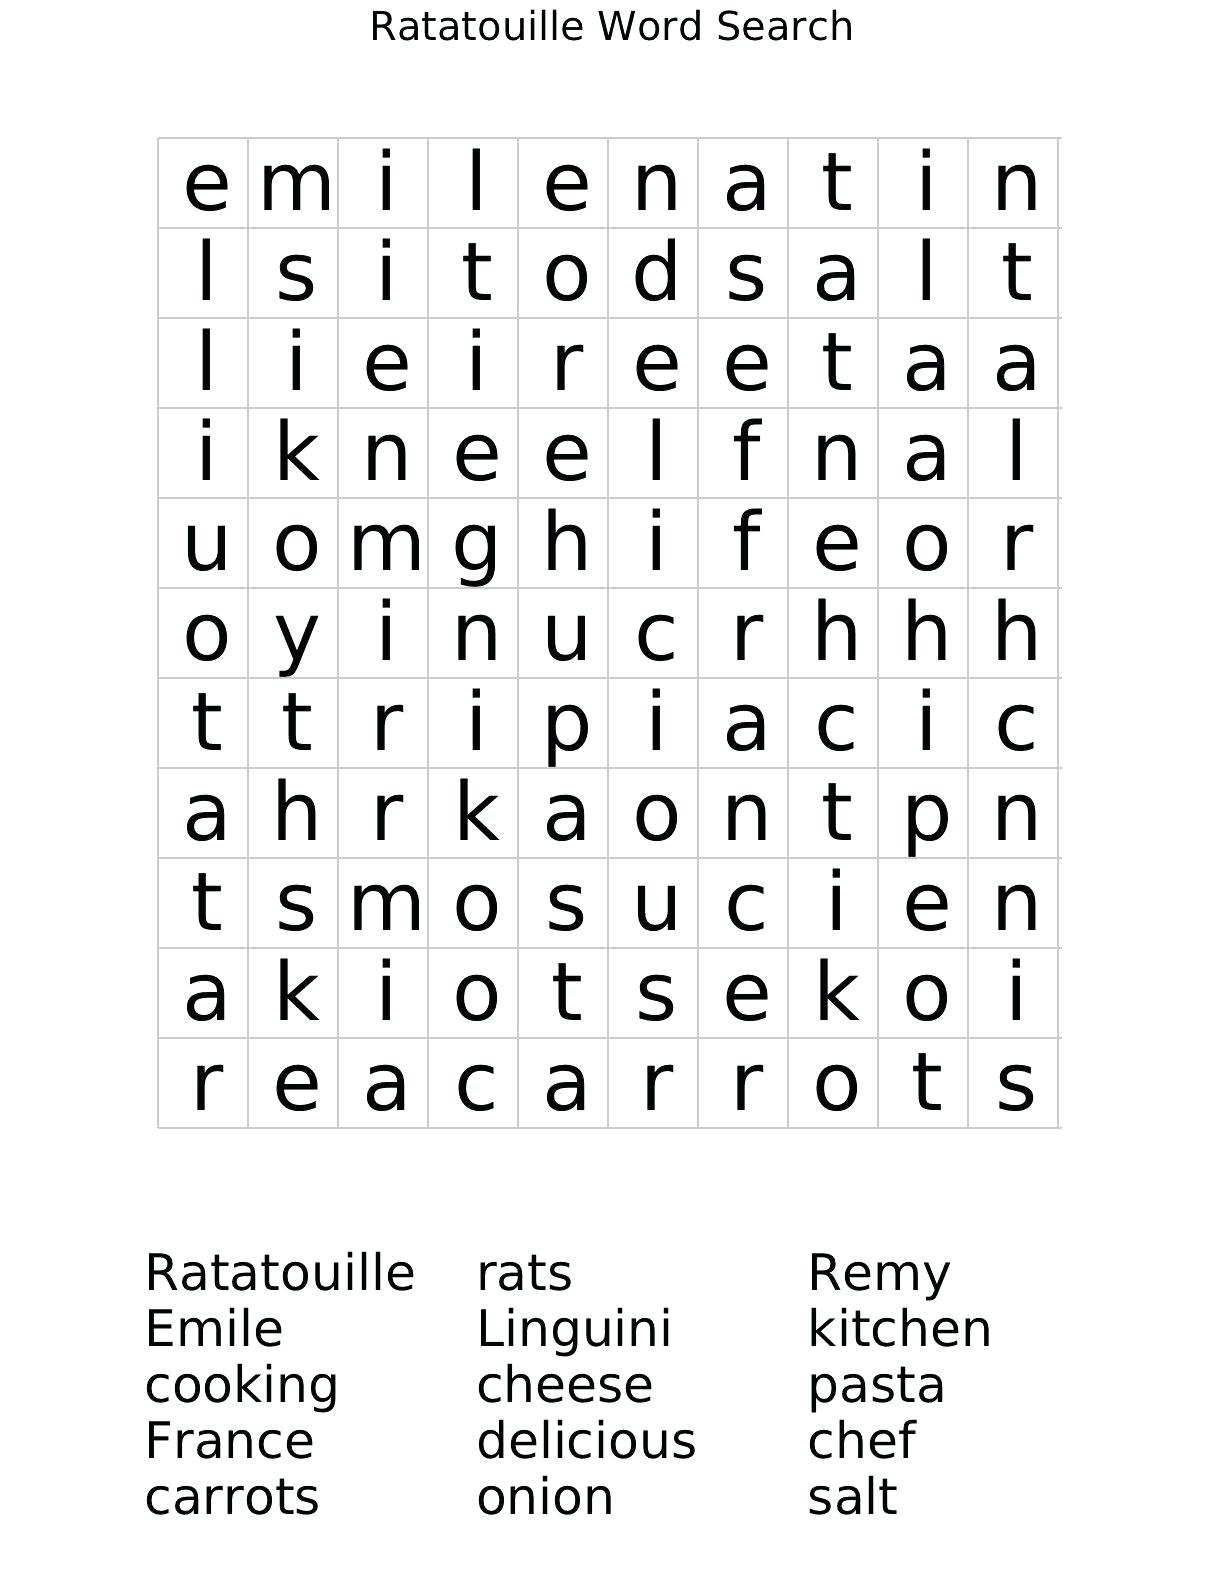 Word Searches For 3Rd Grade Math Grade Math Crossword Puzzles - Printable Crossword Puzzles For 3Rd Graders